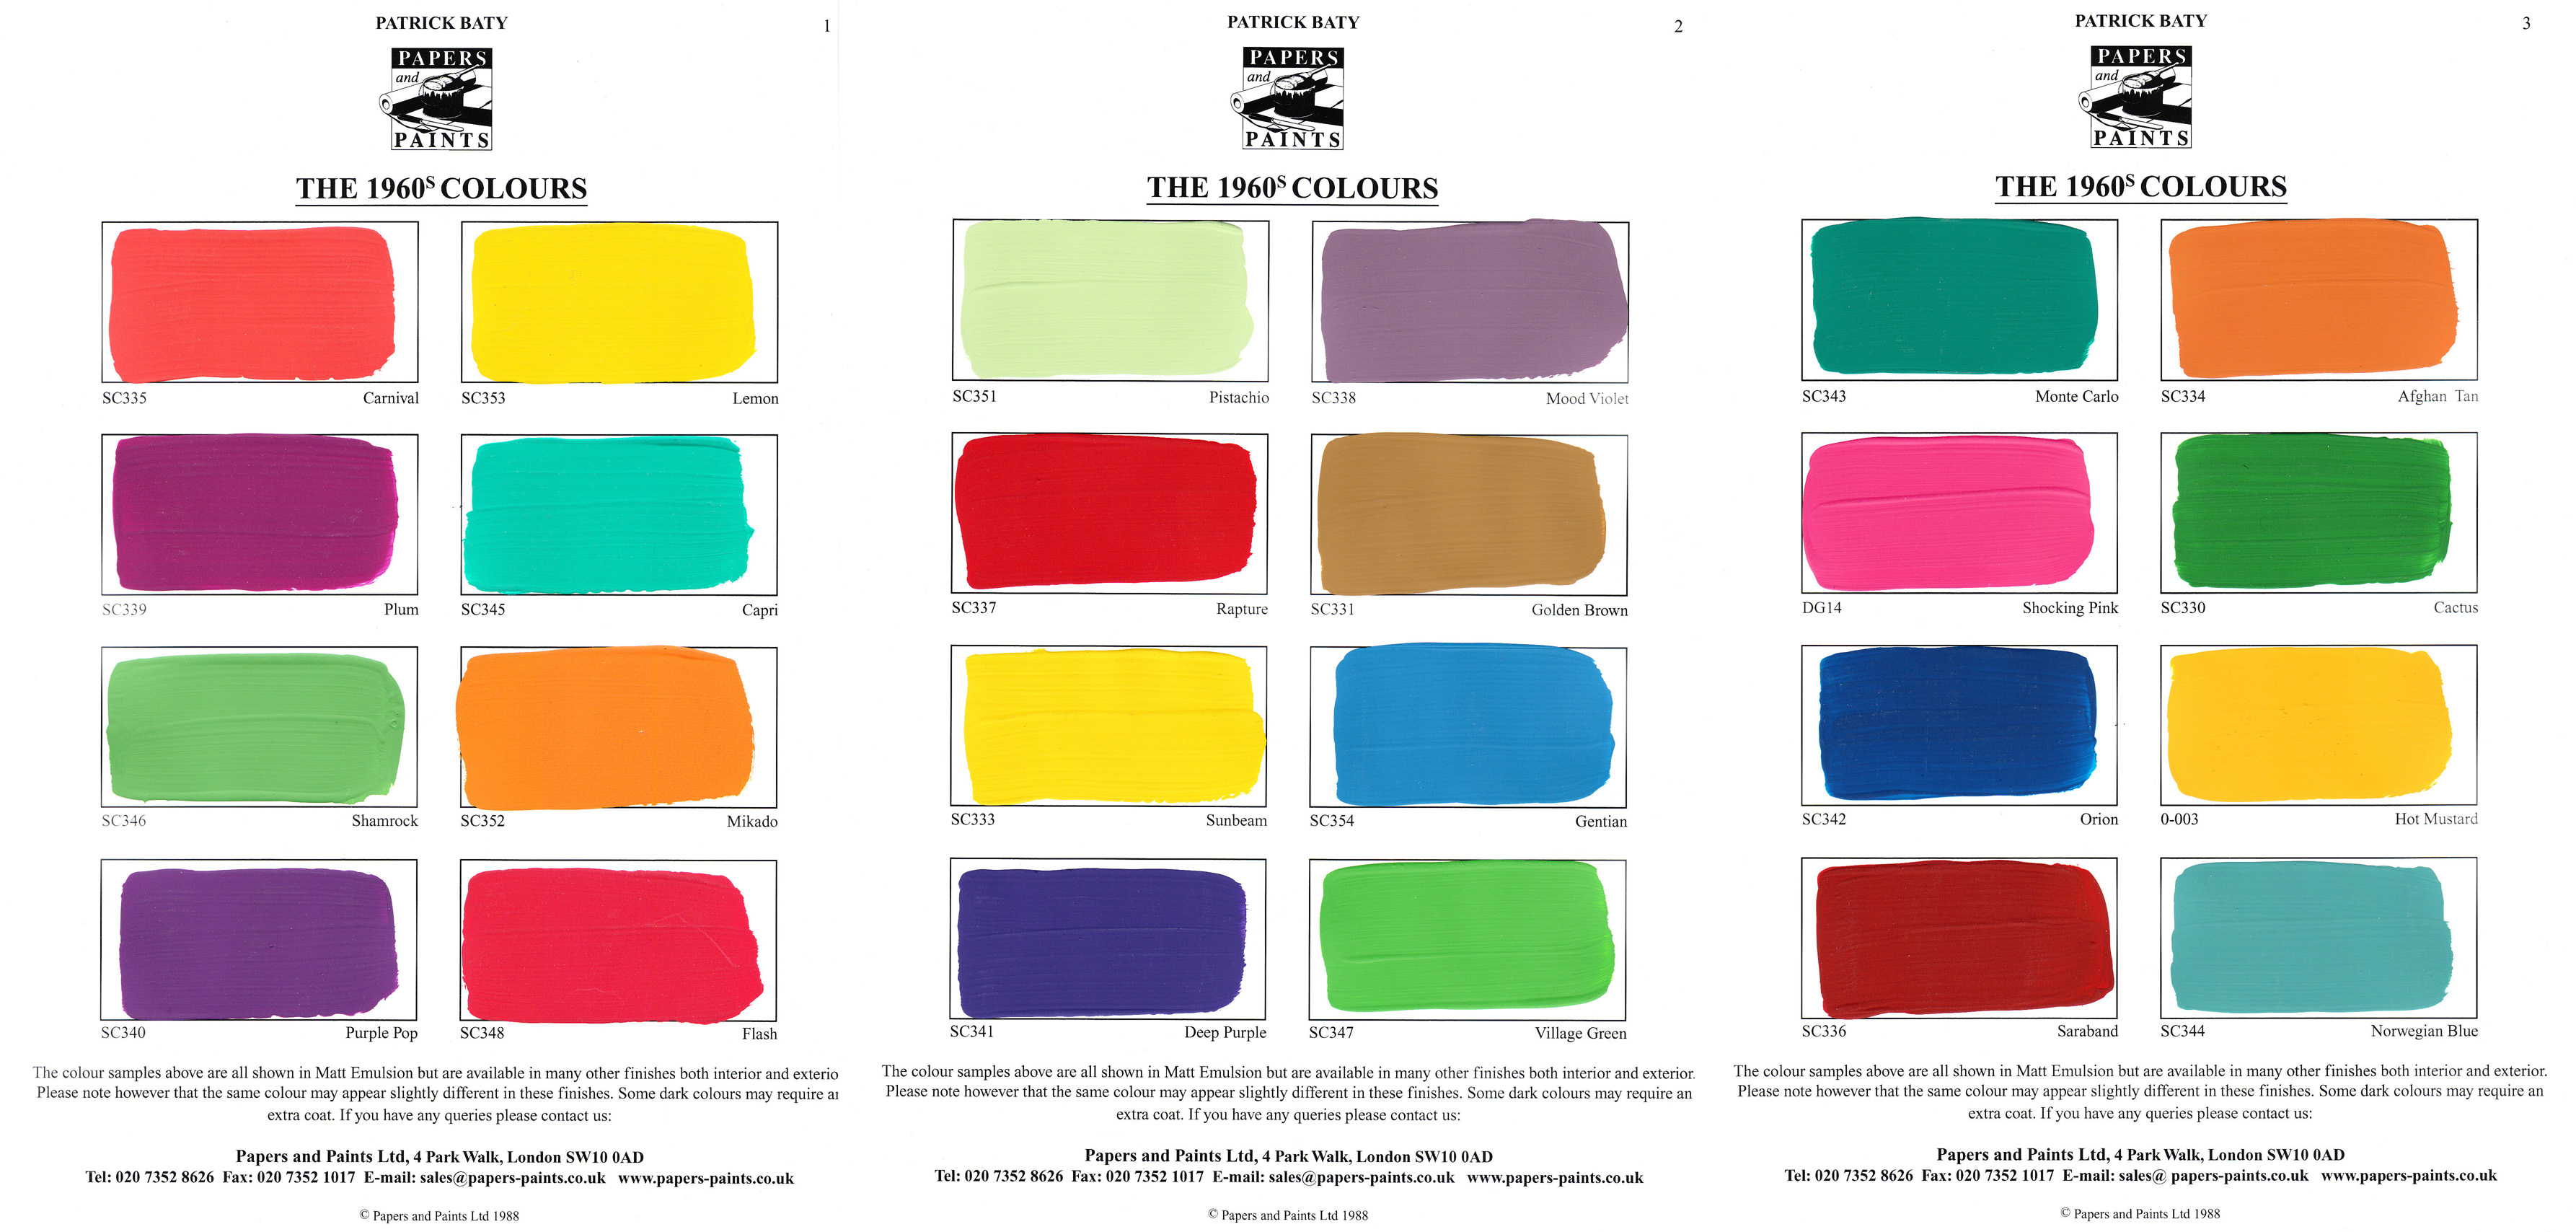 Great Paint Colors From the 1960s 3572 x 1708 · 1133 kB · jpeg